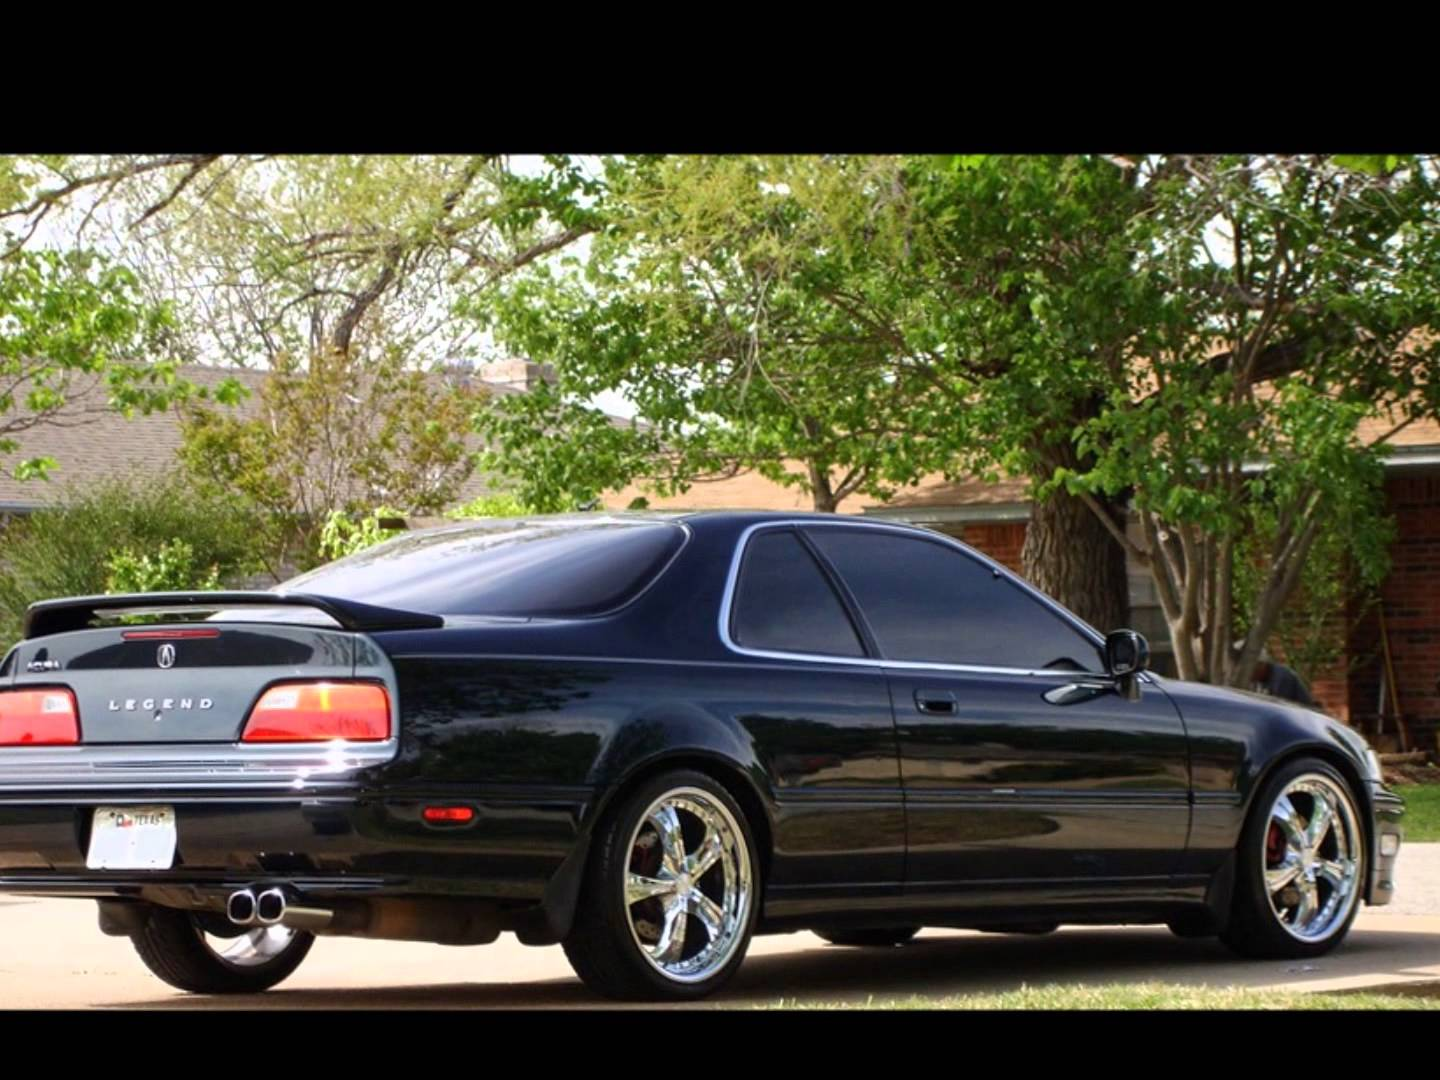 Acura Legend #16